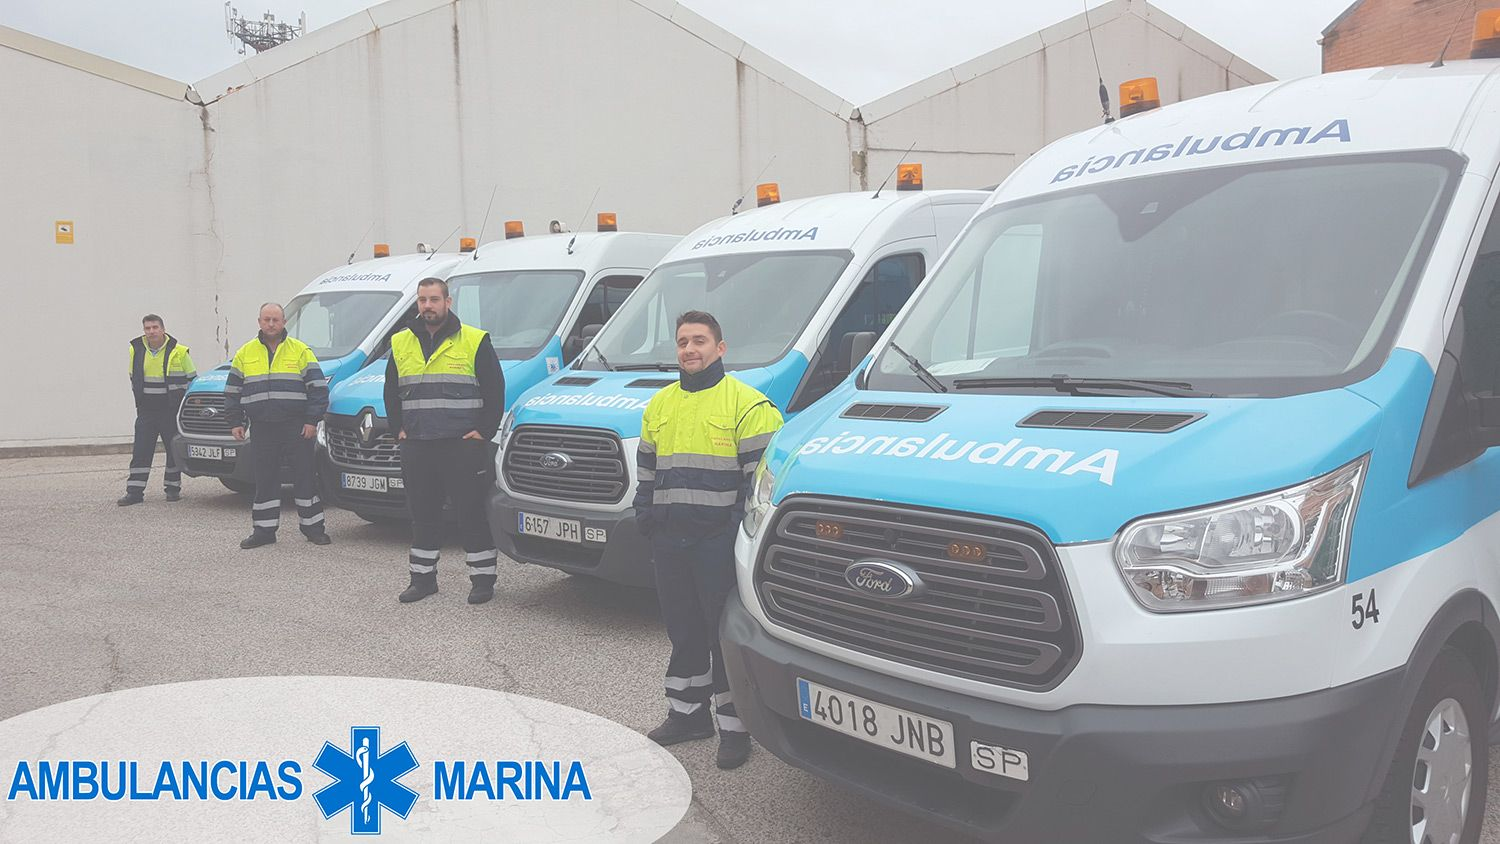 Ambulancias Marina, aspectos interesantes sobre las ambulancias